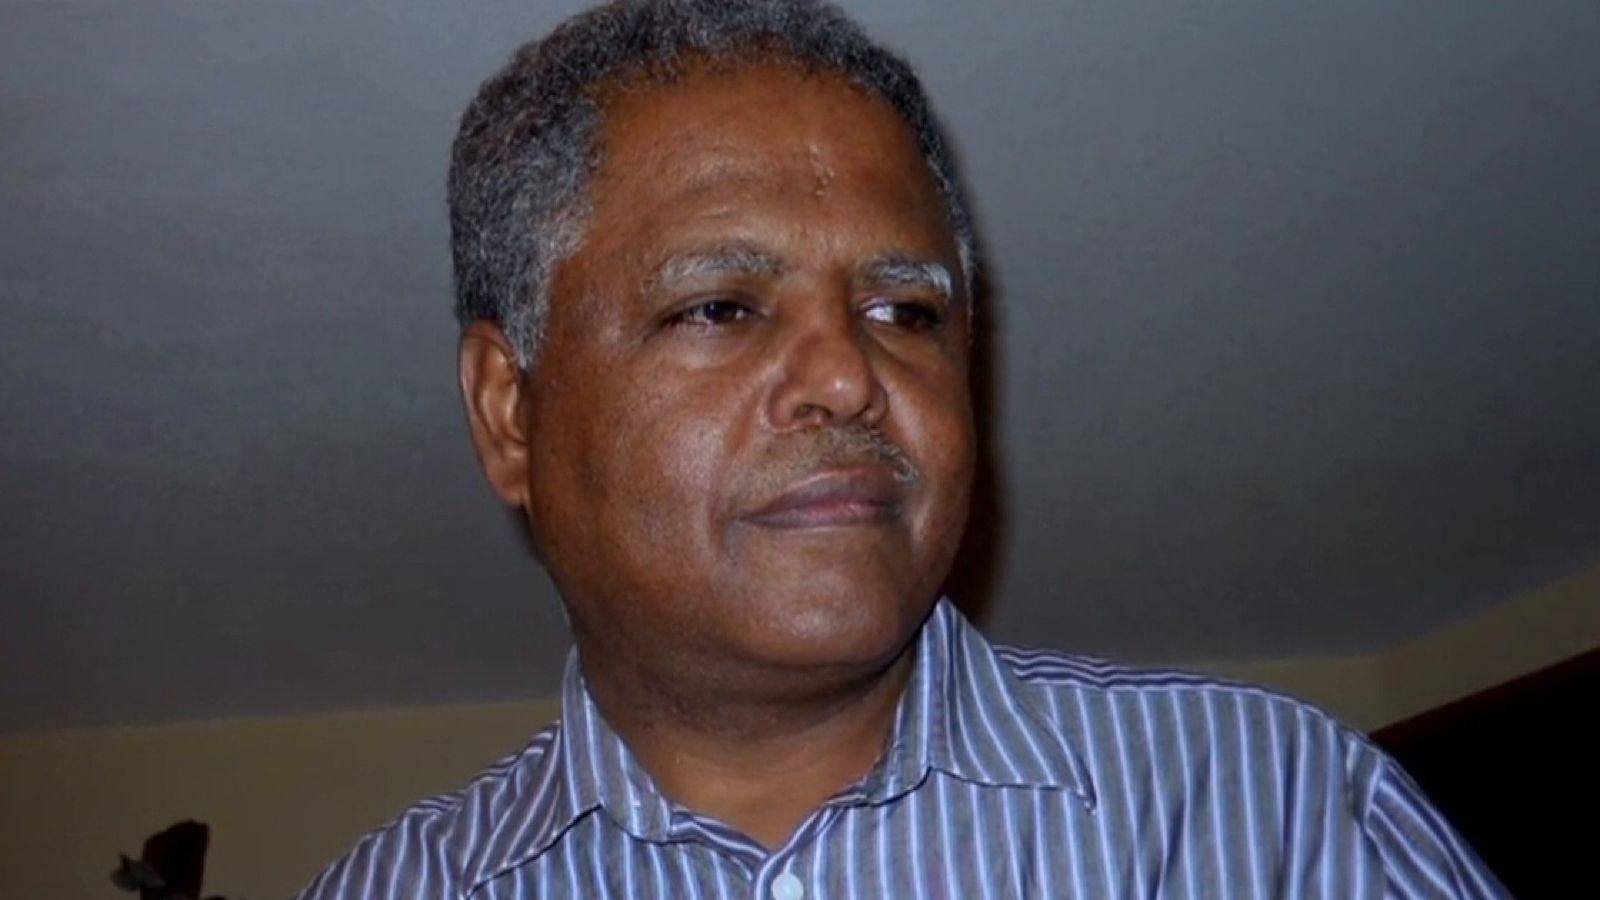 Family to see illegally jailed Andy Tsege in Ethiopia after three years